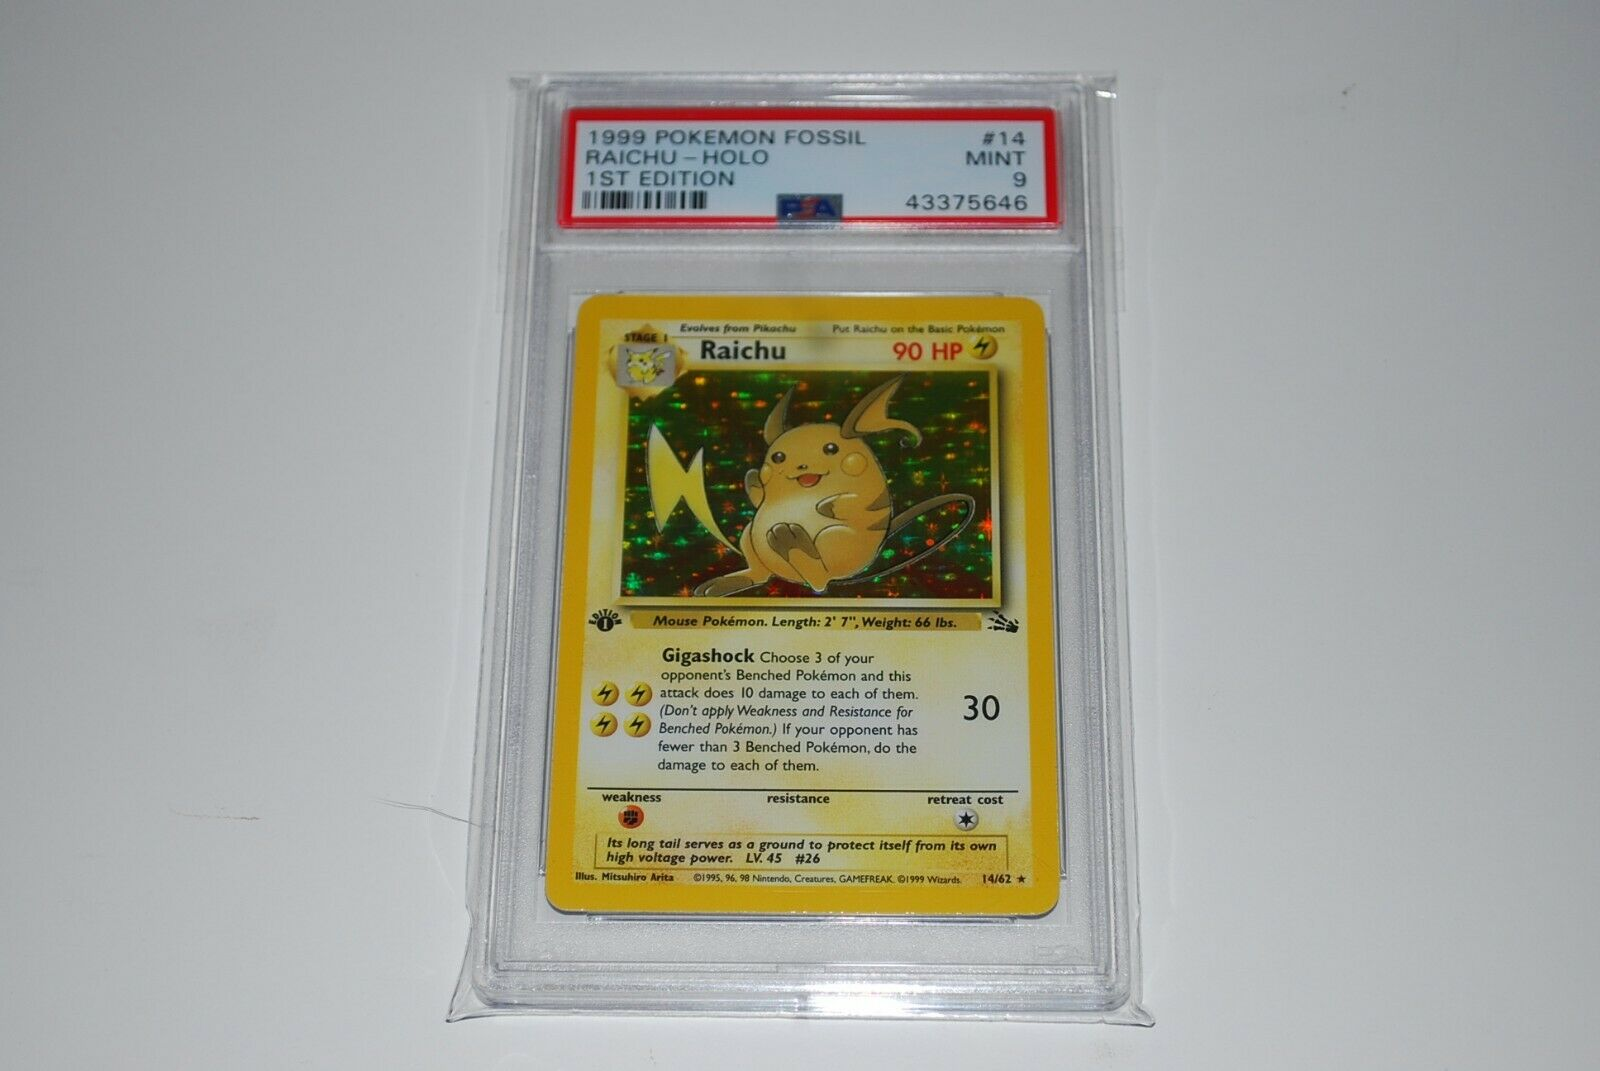 PSA 9 Mint 1st Edition Raichu Holo 1462 Fossil Pokemon Card